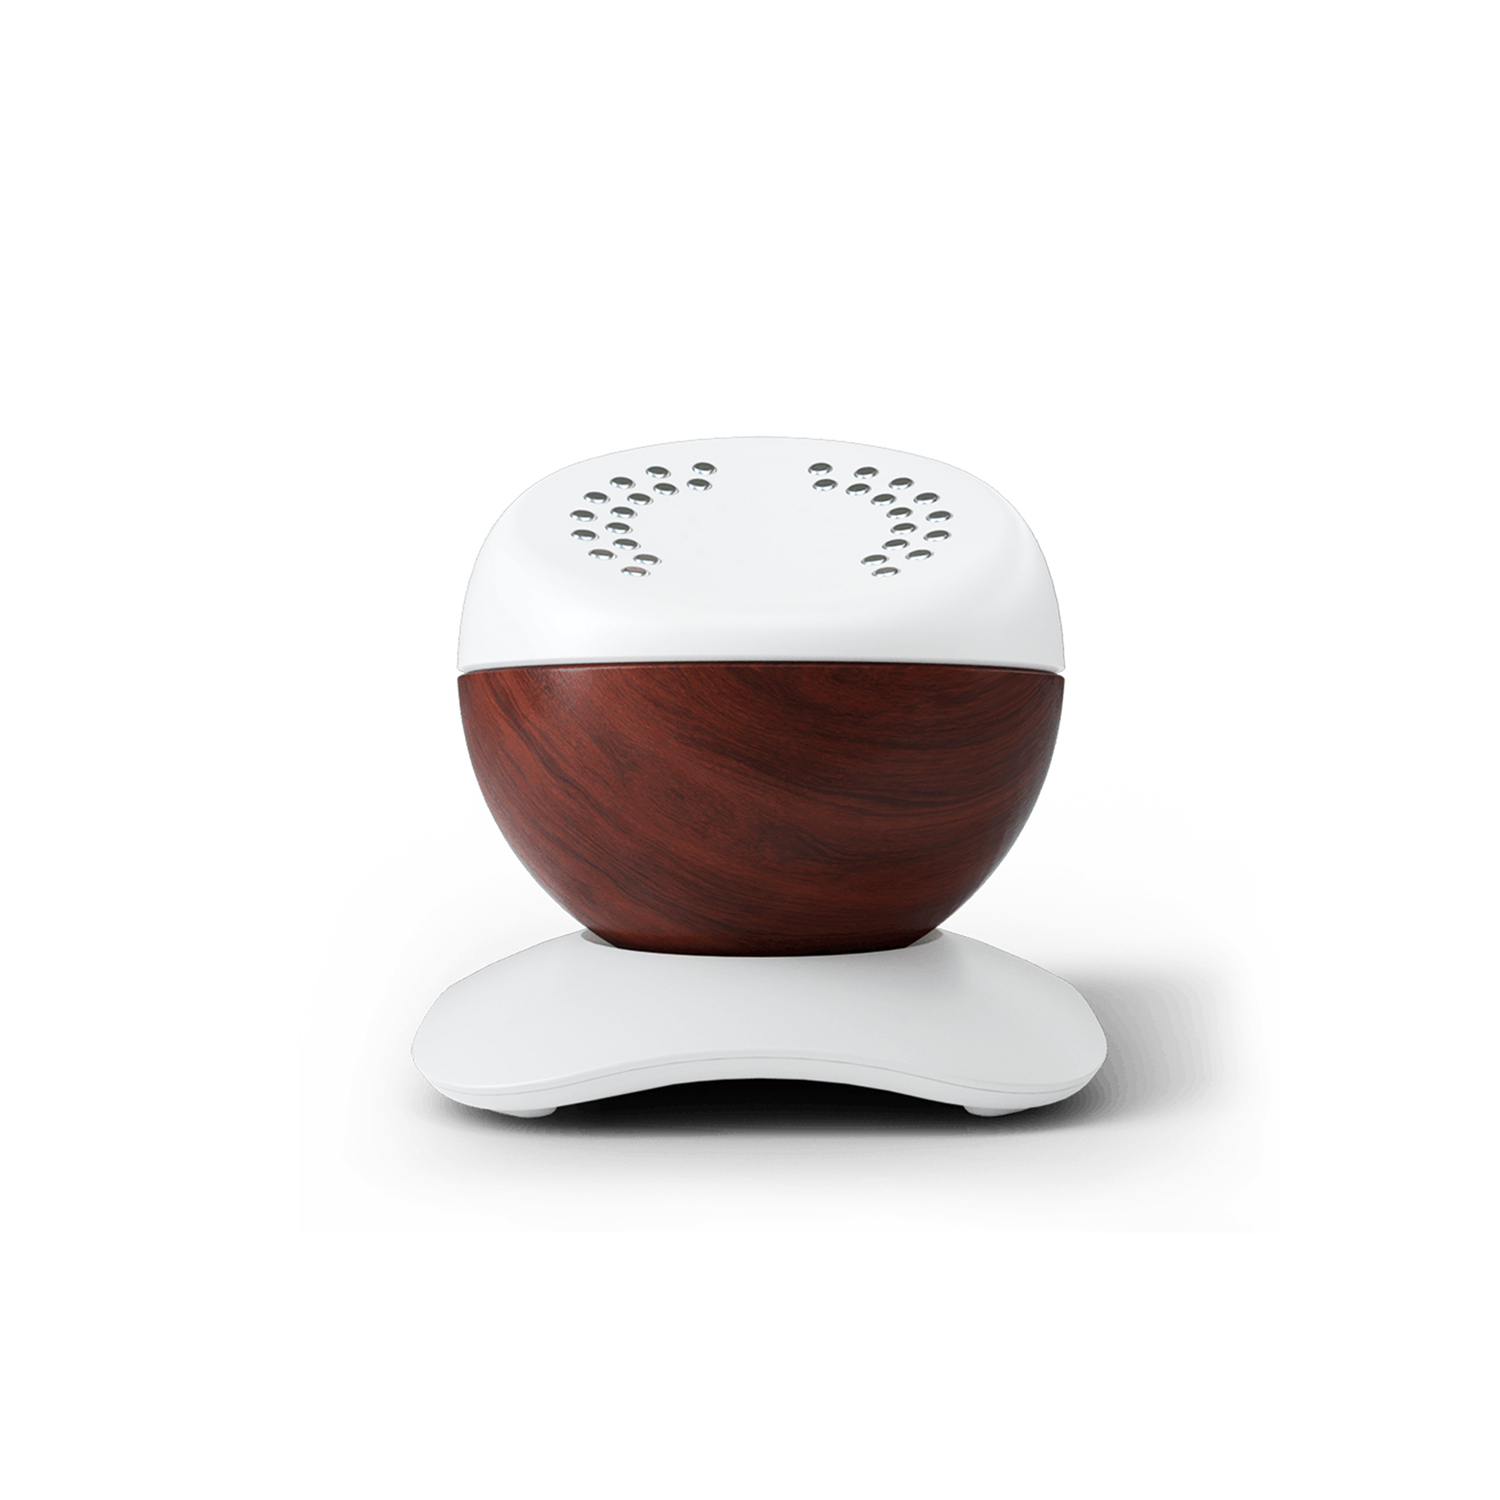 Core meditation trainer on charging dock.